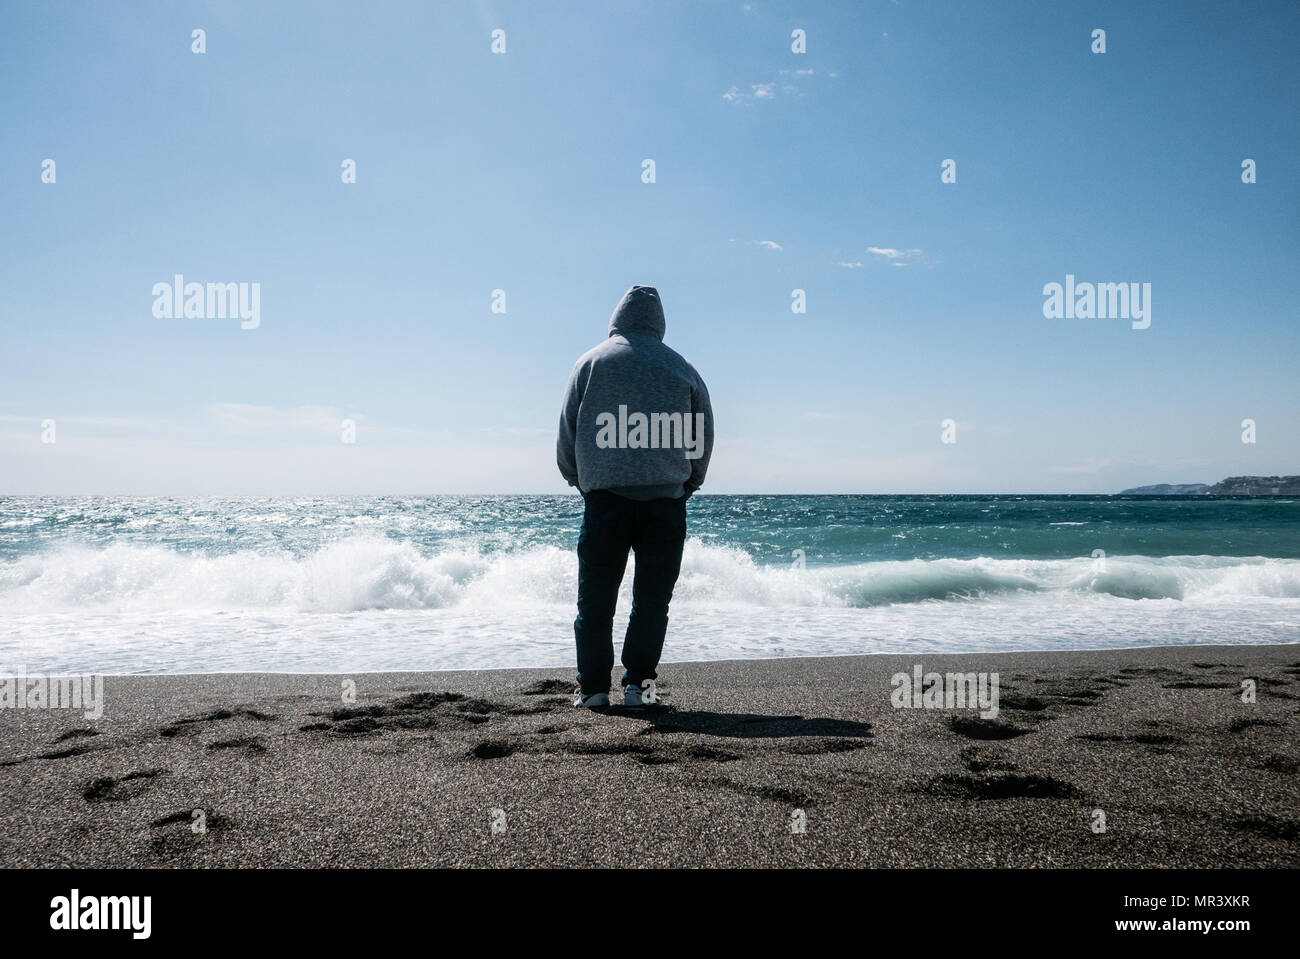 Lone adult male wearing a hooded top contemplating whilst looking at waves and the Salobrena, Southern Spain - Stock Image